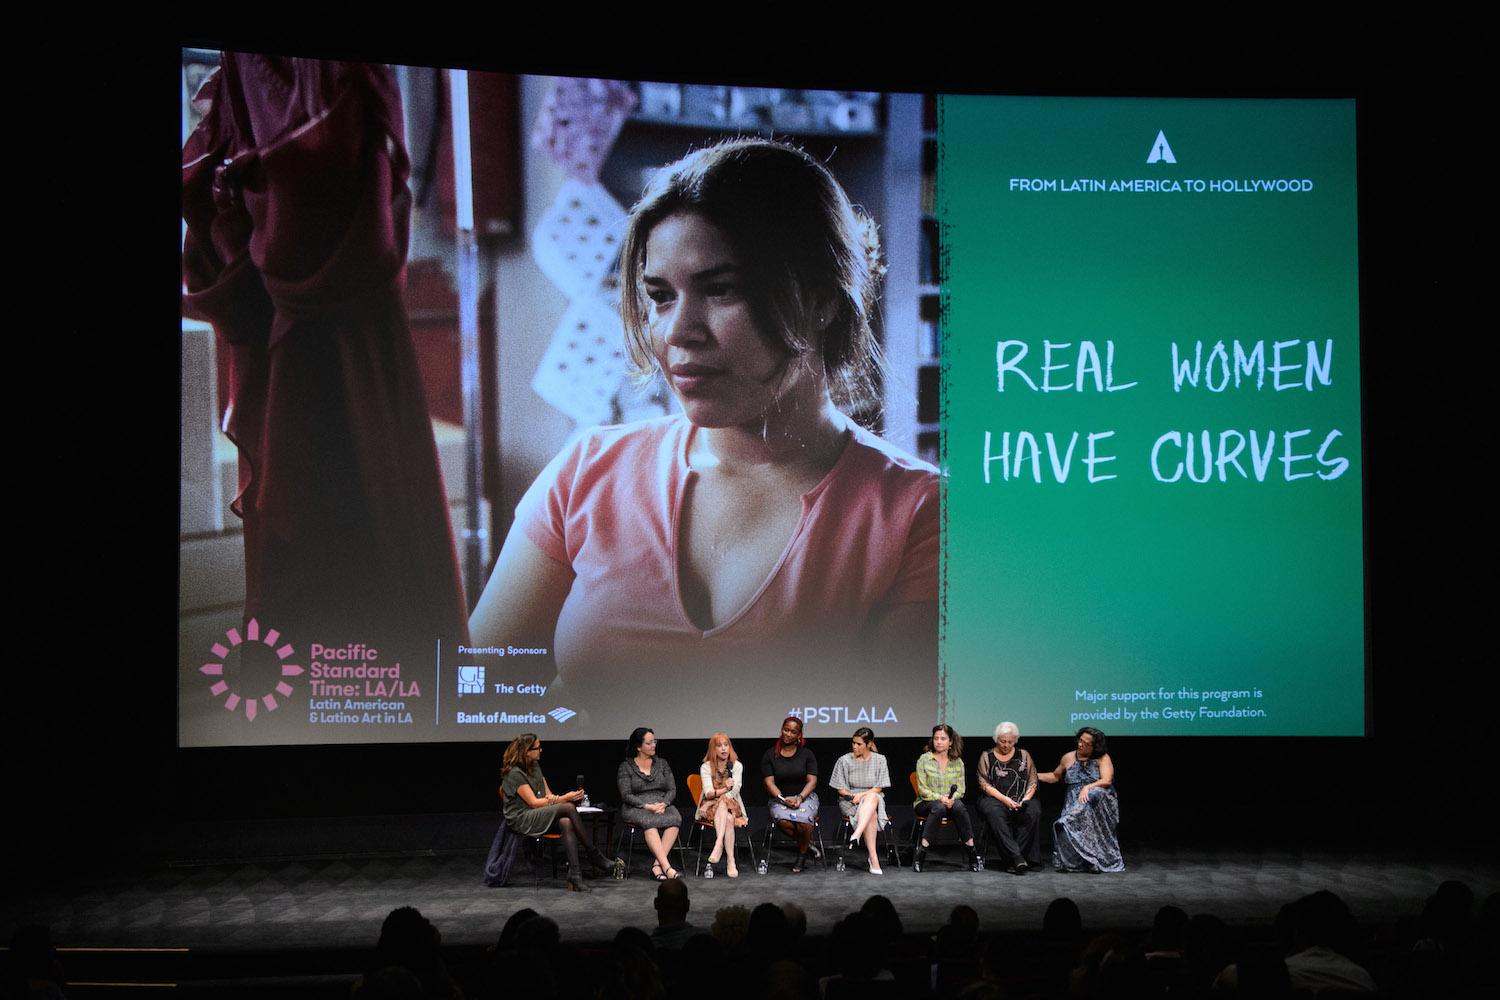 The Filmmakers Behind 'Real Women Have Curves' Share the Struggles of Getting Their Body-Positive Film Made